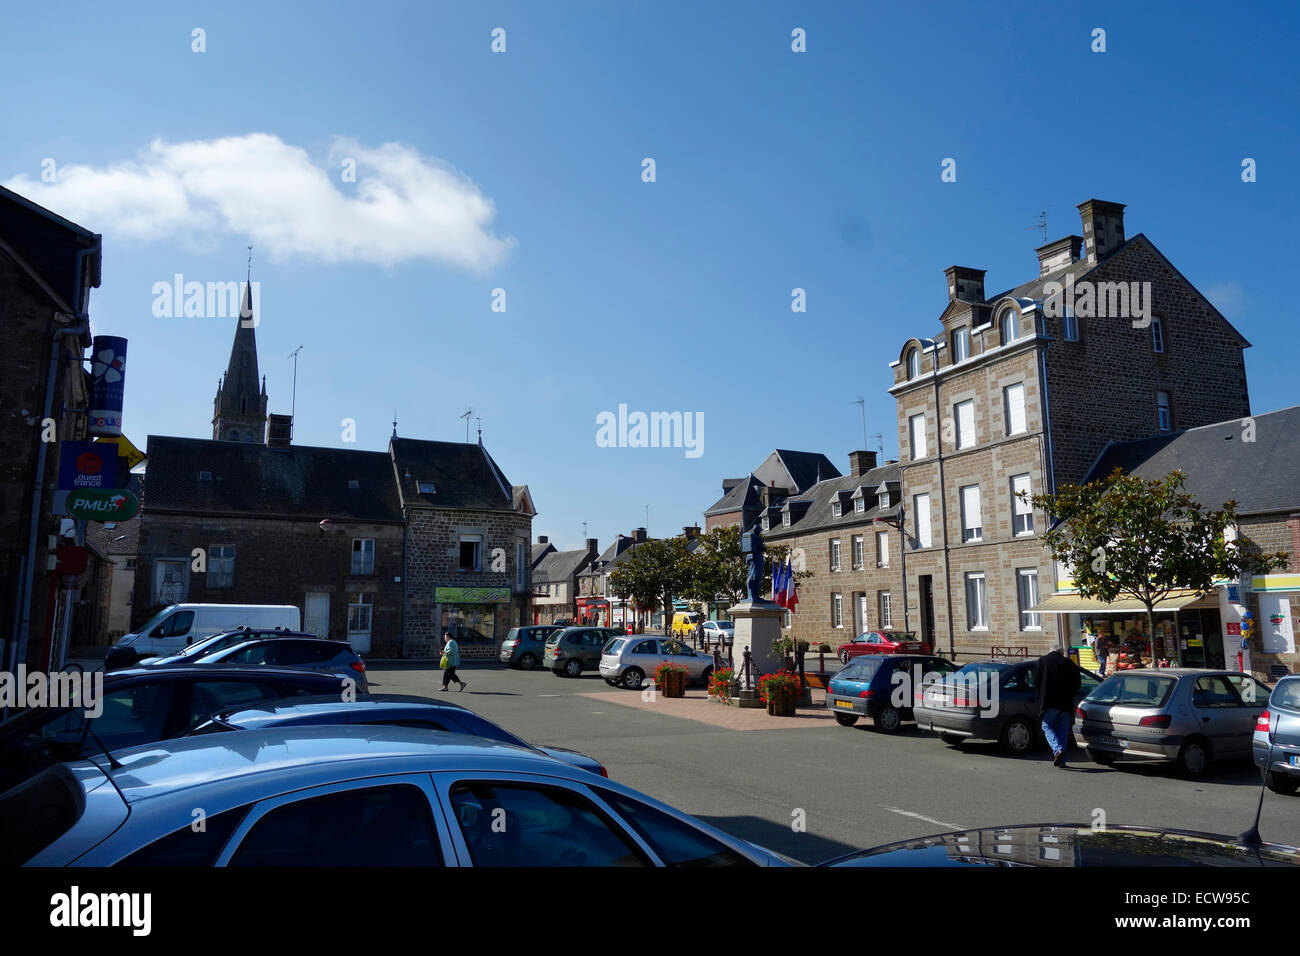 Ceaucé - a small town in Mayenne, France with no out of town supermarkets and a thriving centre - Stock Image